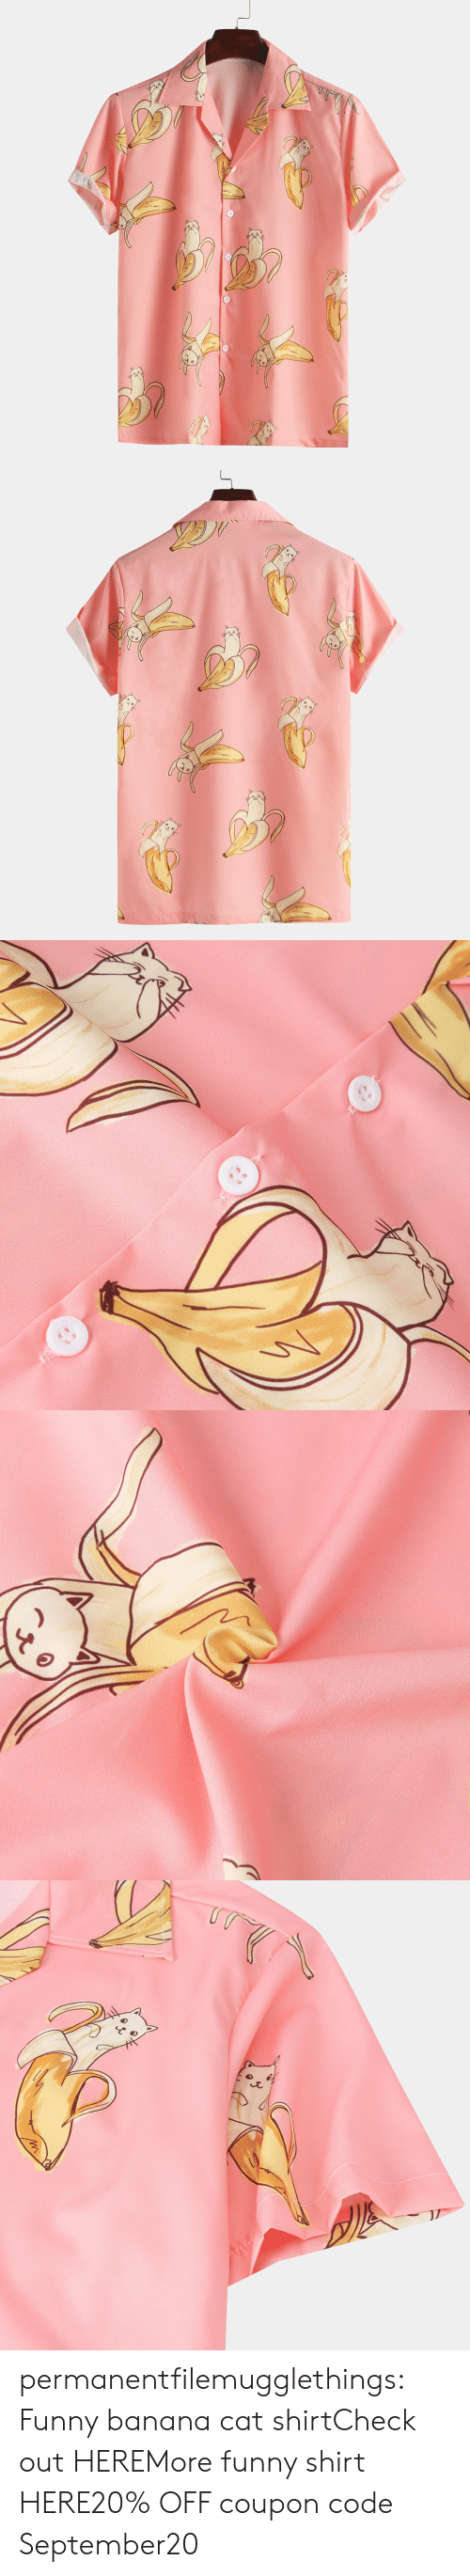 More Funny: permanentfilemugglethings:  Funny banana cat shirtCheck out HEREMore funny shirt HERE20% OFF coupon code:September20